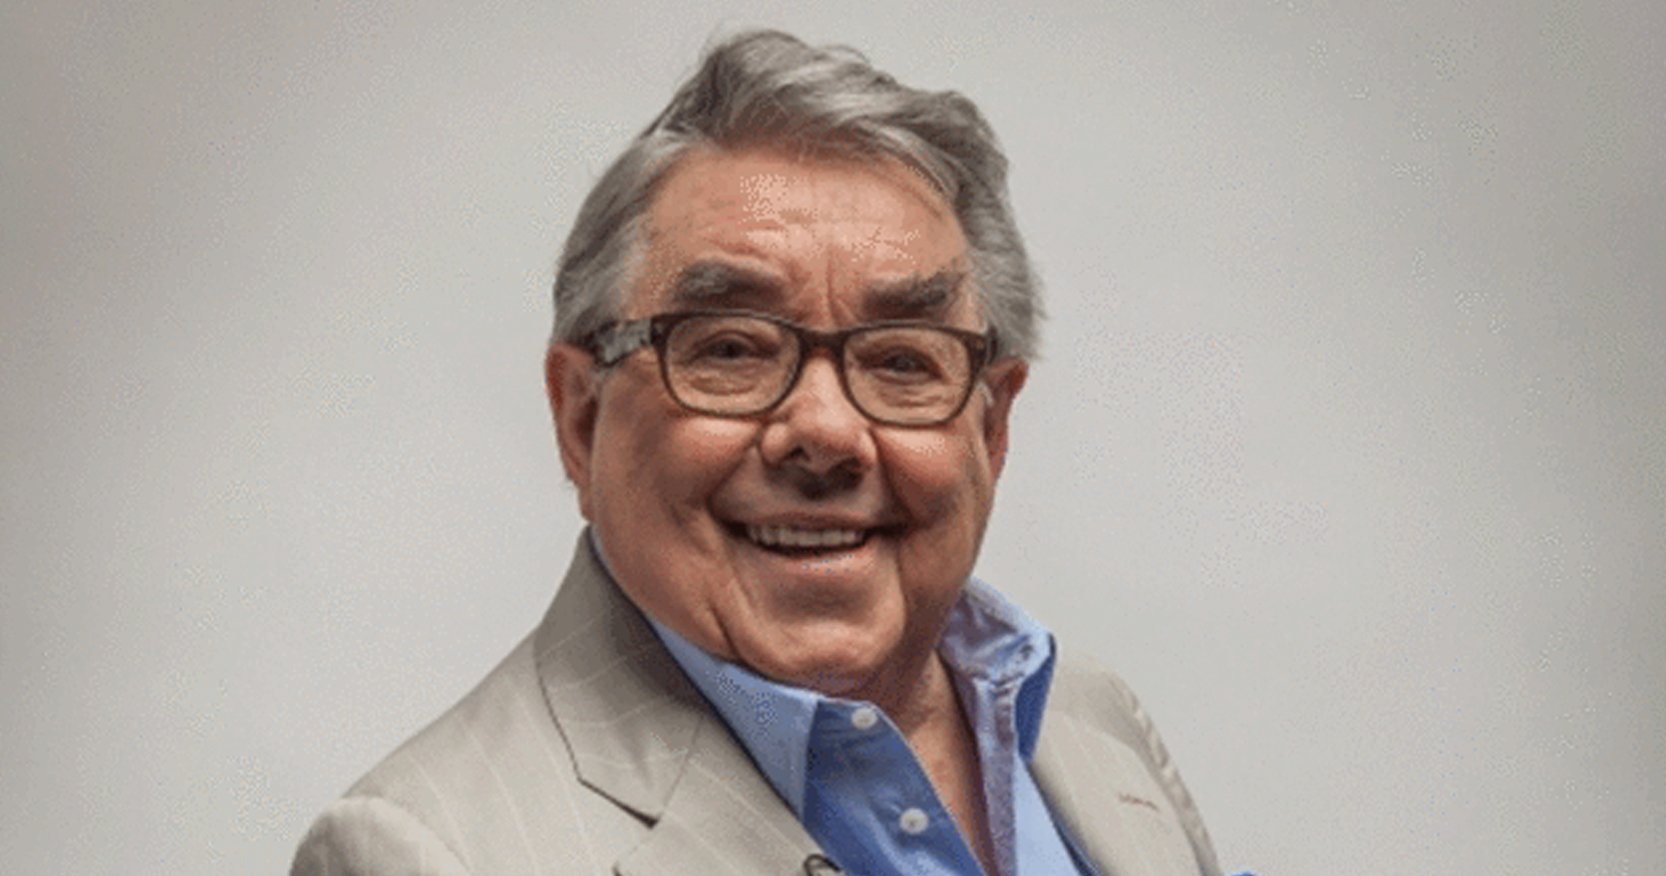 Ronnie Corbett, Best Known Being One Of The Hilarious Two Ronnies, dies aged 85